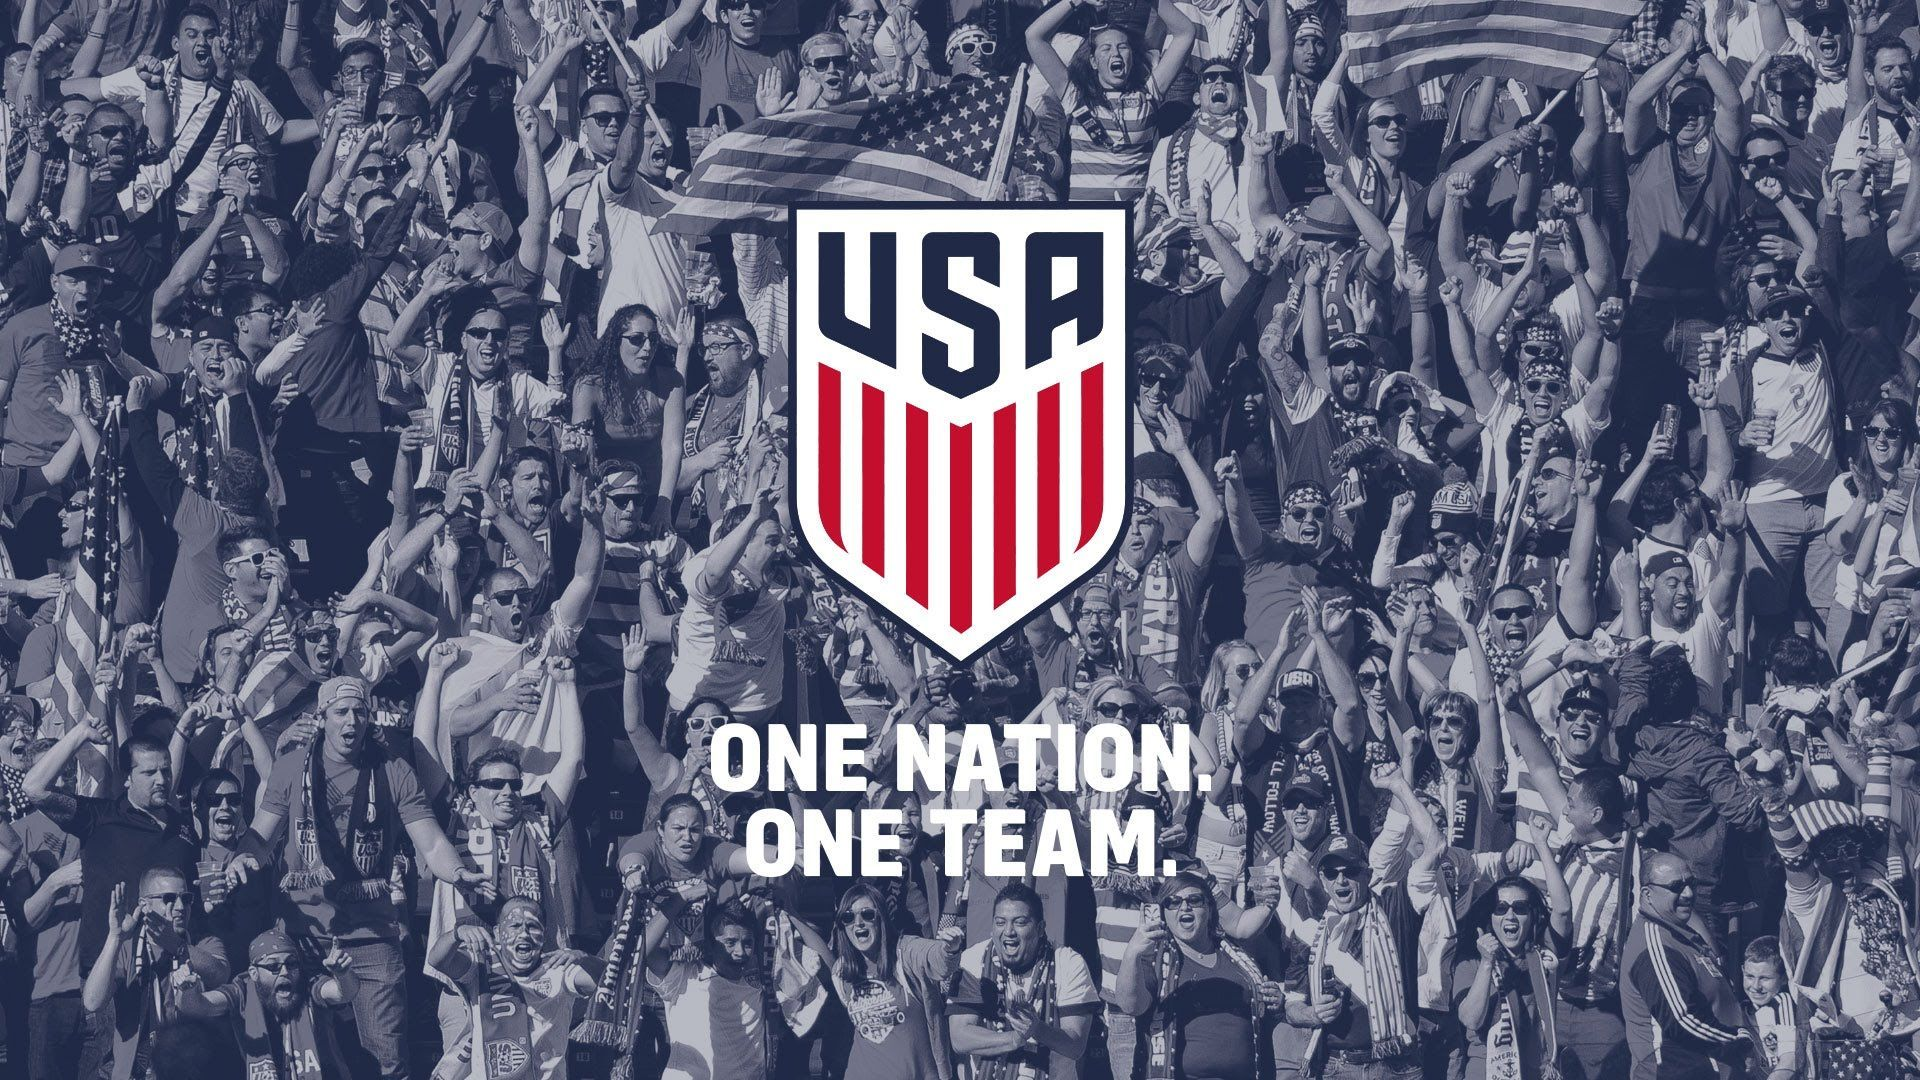 Best American Players Fifa 20 In 2020 Usa Soccer Team Usa Soccer Women One Team